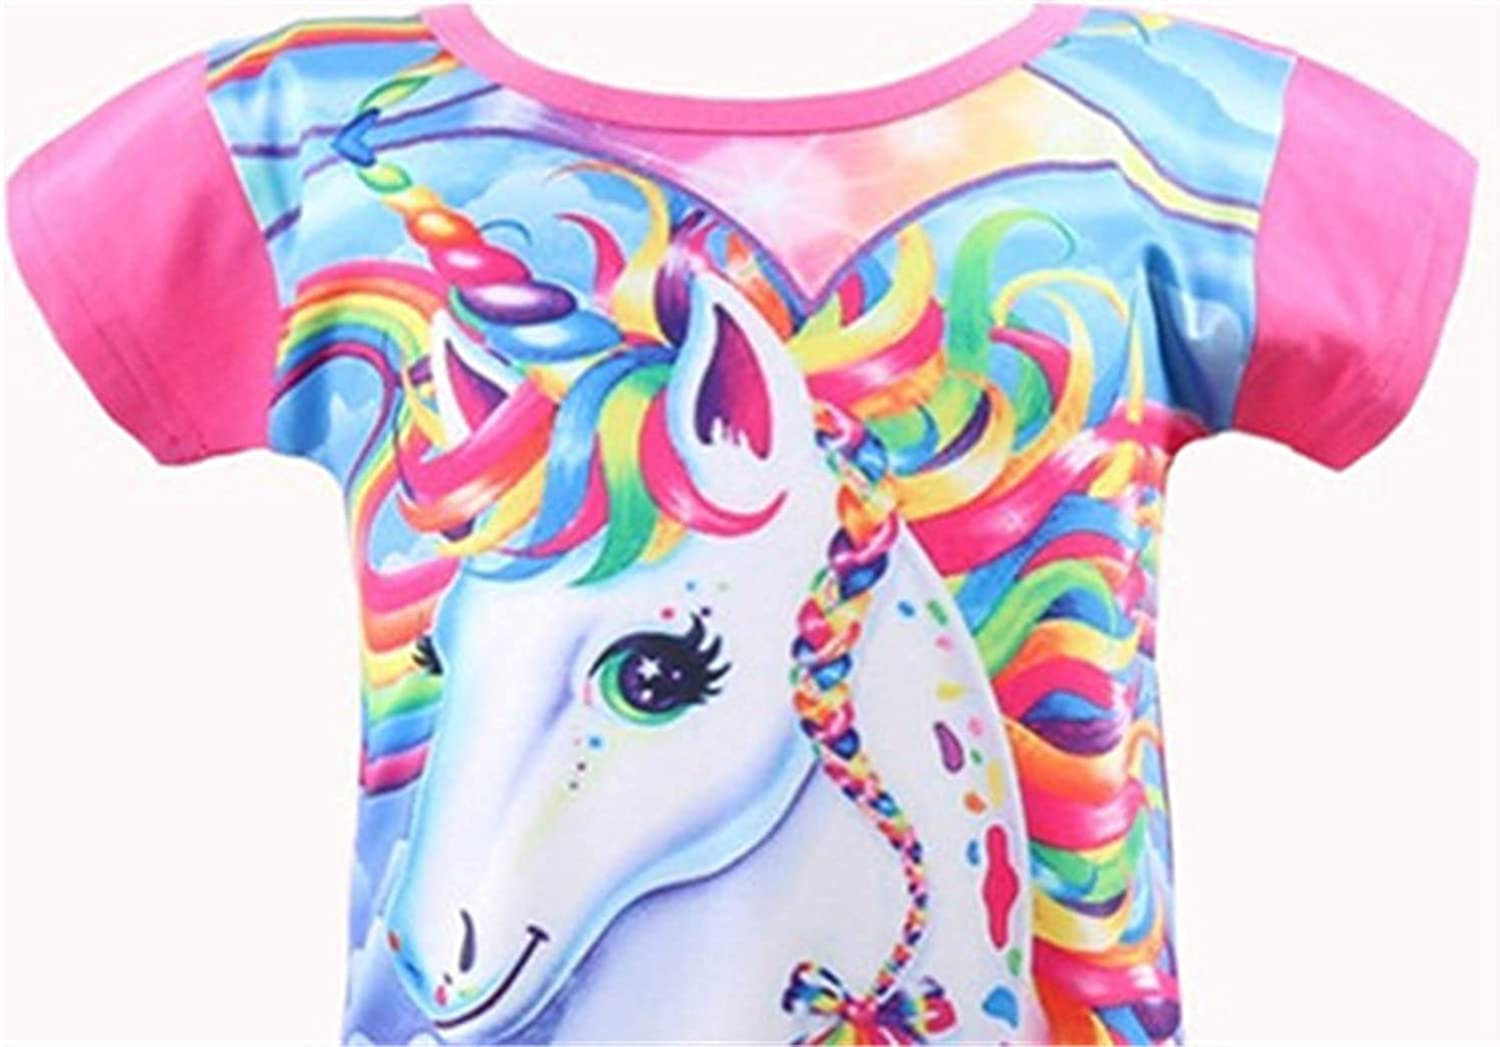 Rswsp Unicorn Printed Toddler Girls Rainbow Nightshirt Casual Nightie Princess Night Dresses